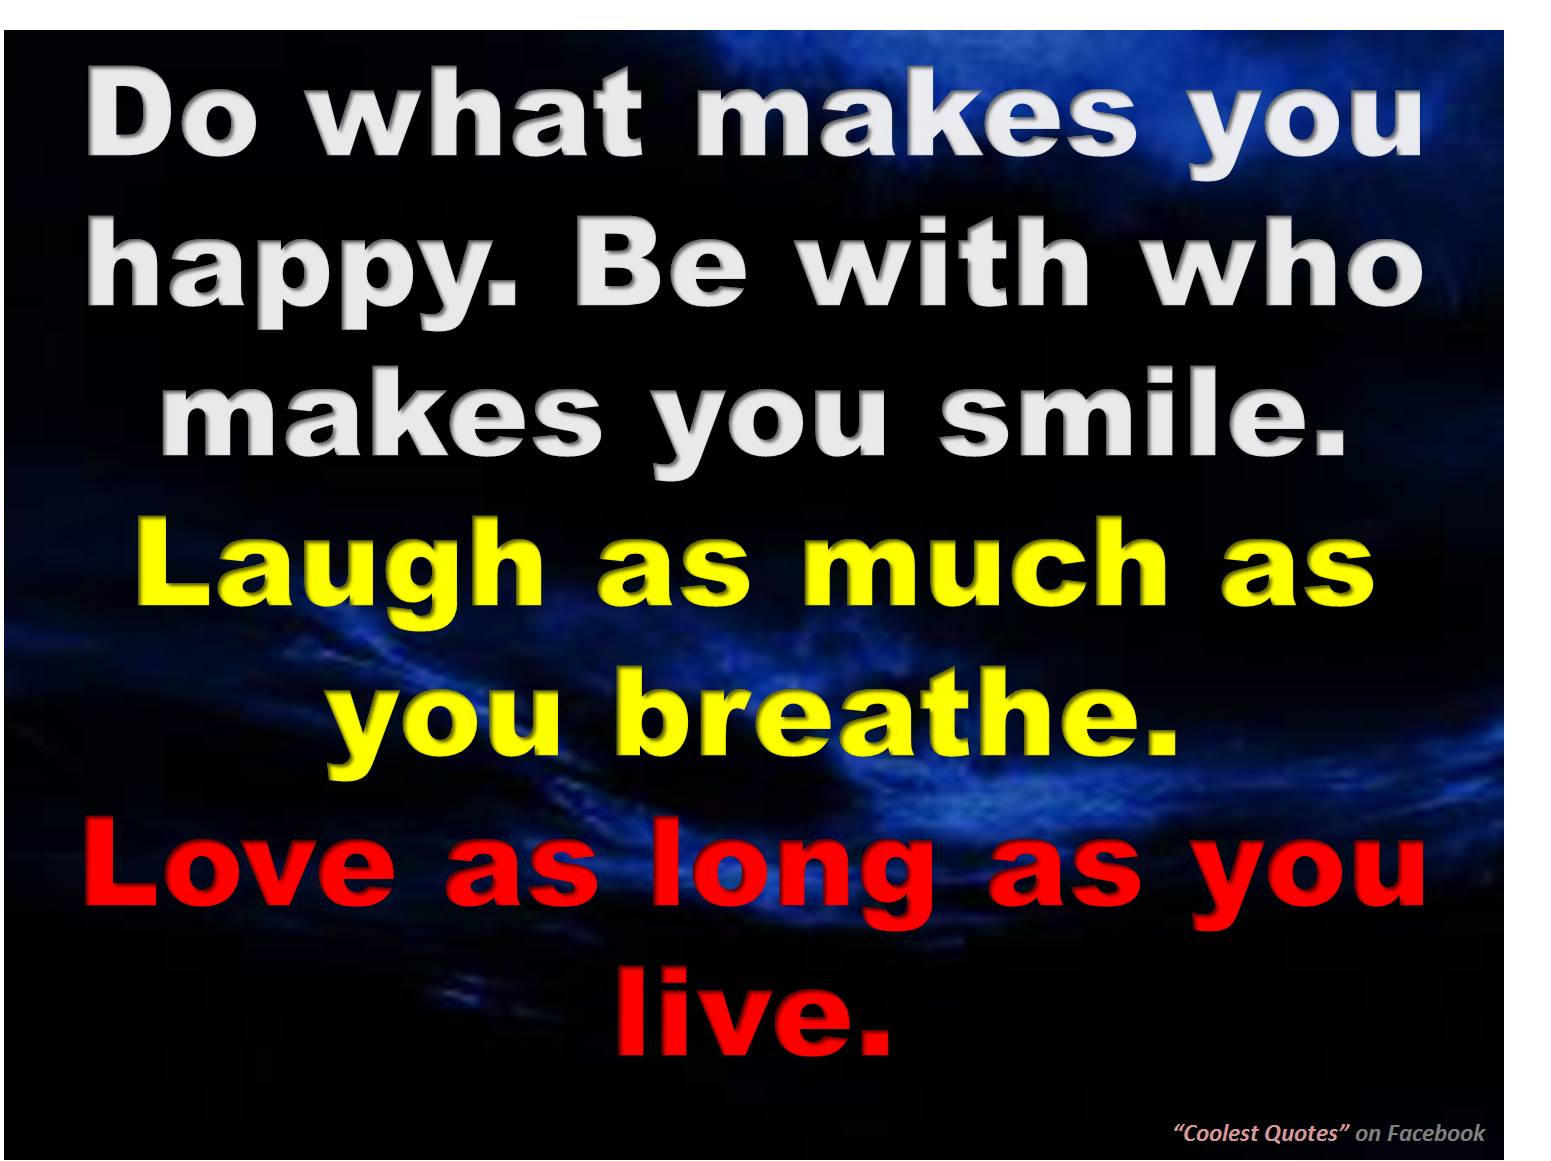 Quote Bp Amazing My Coolest Quotes Beautiful Quote For A Life Full Of Love And Smiles